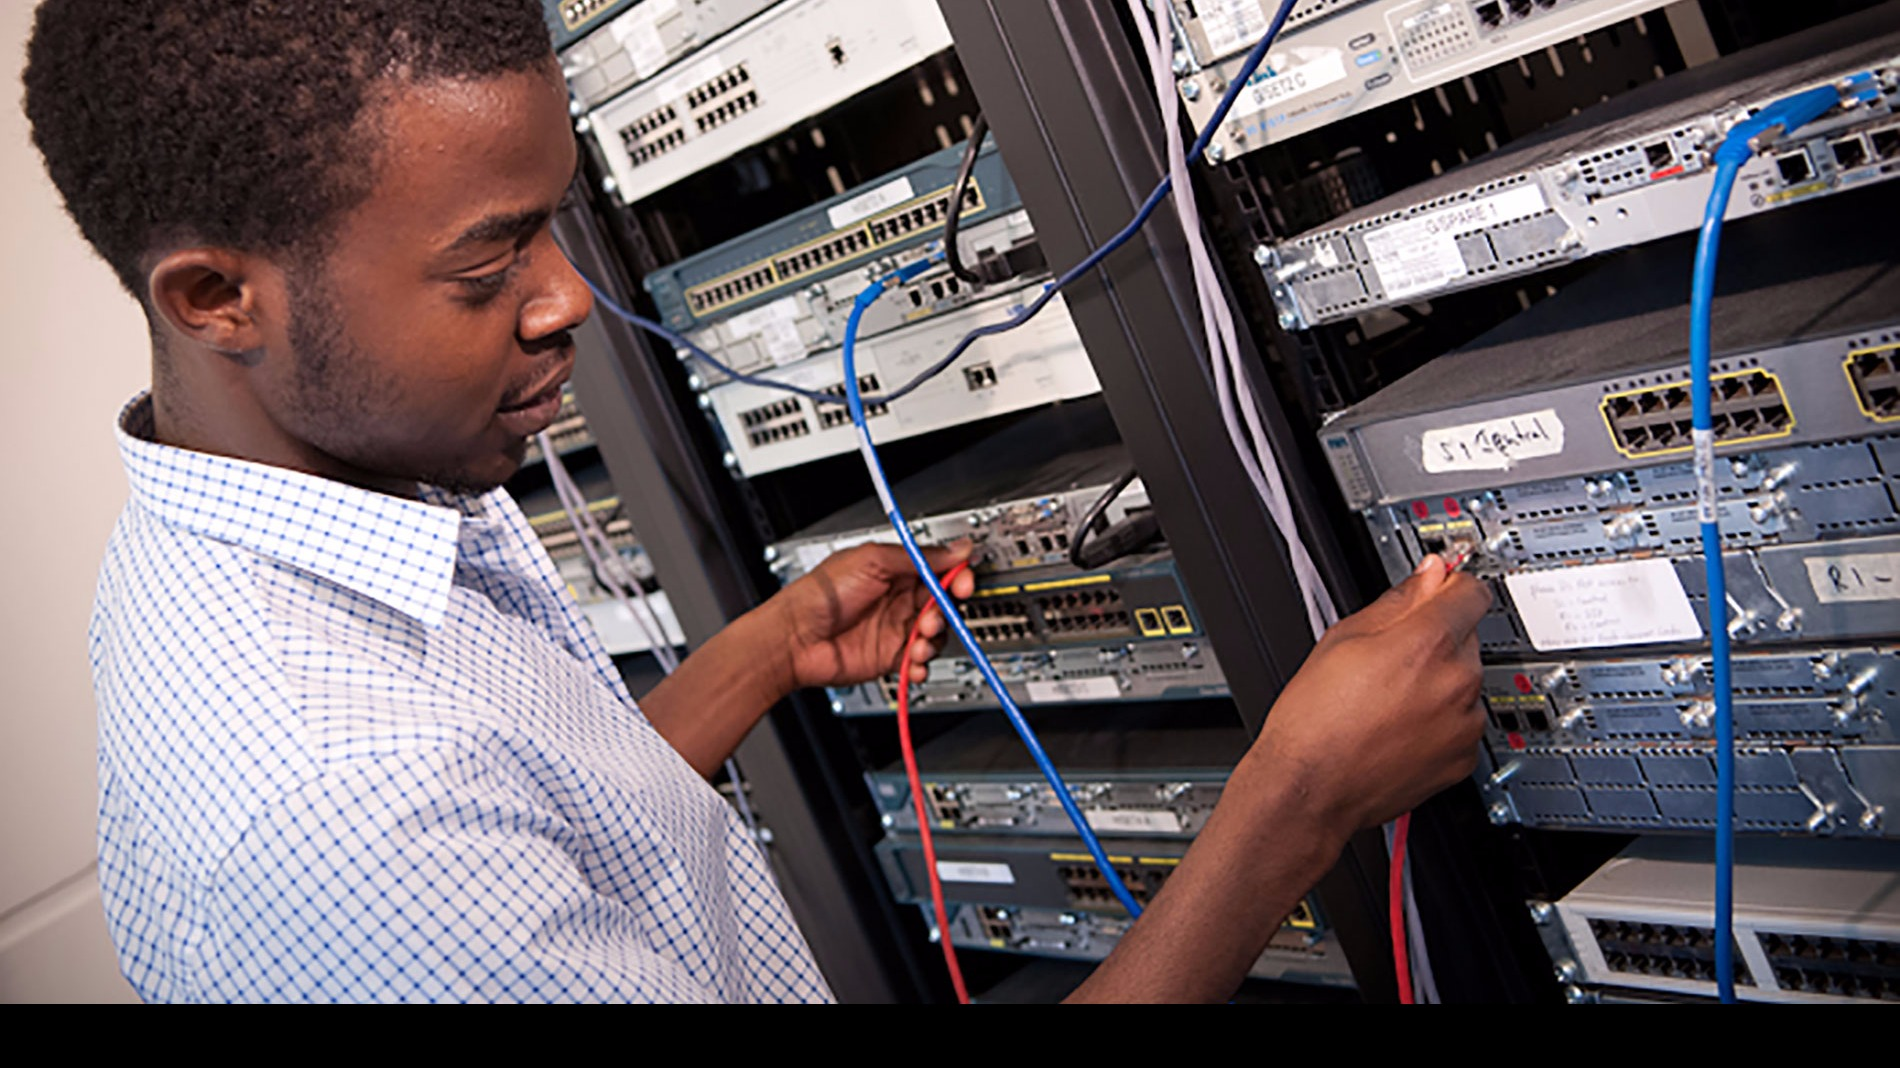 Computer networks bsc